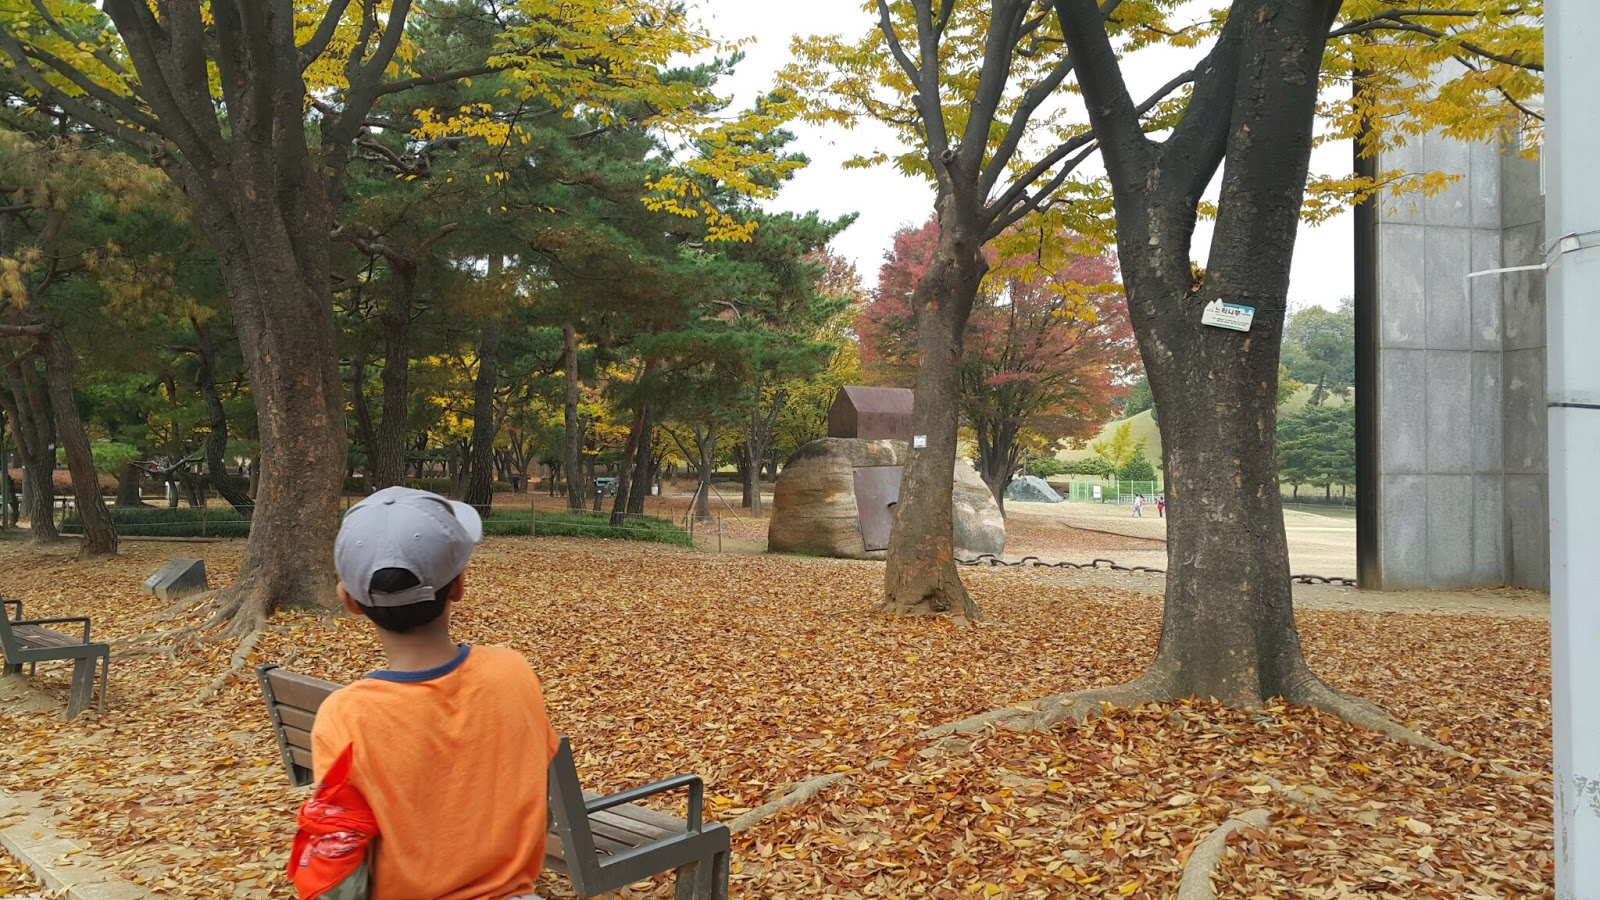 Walk in the colorful park